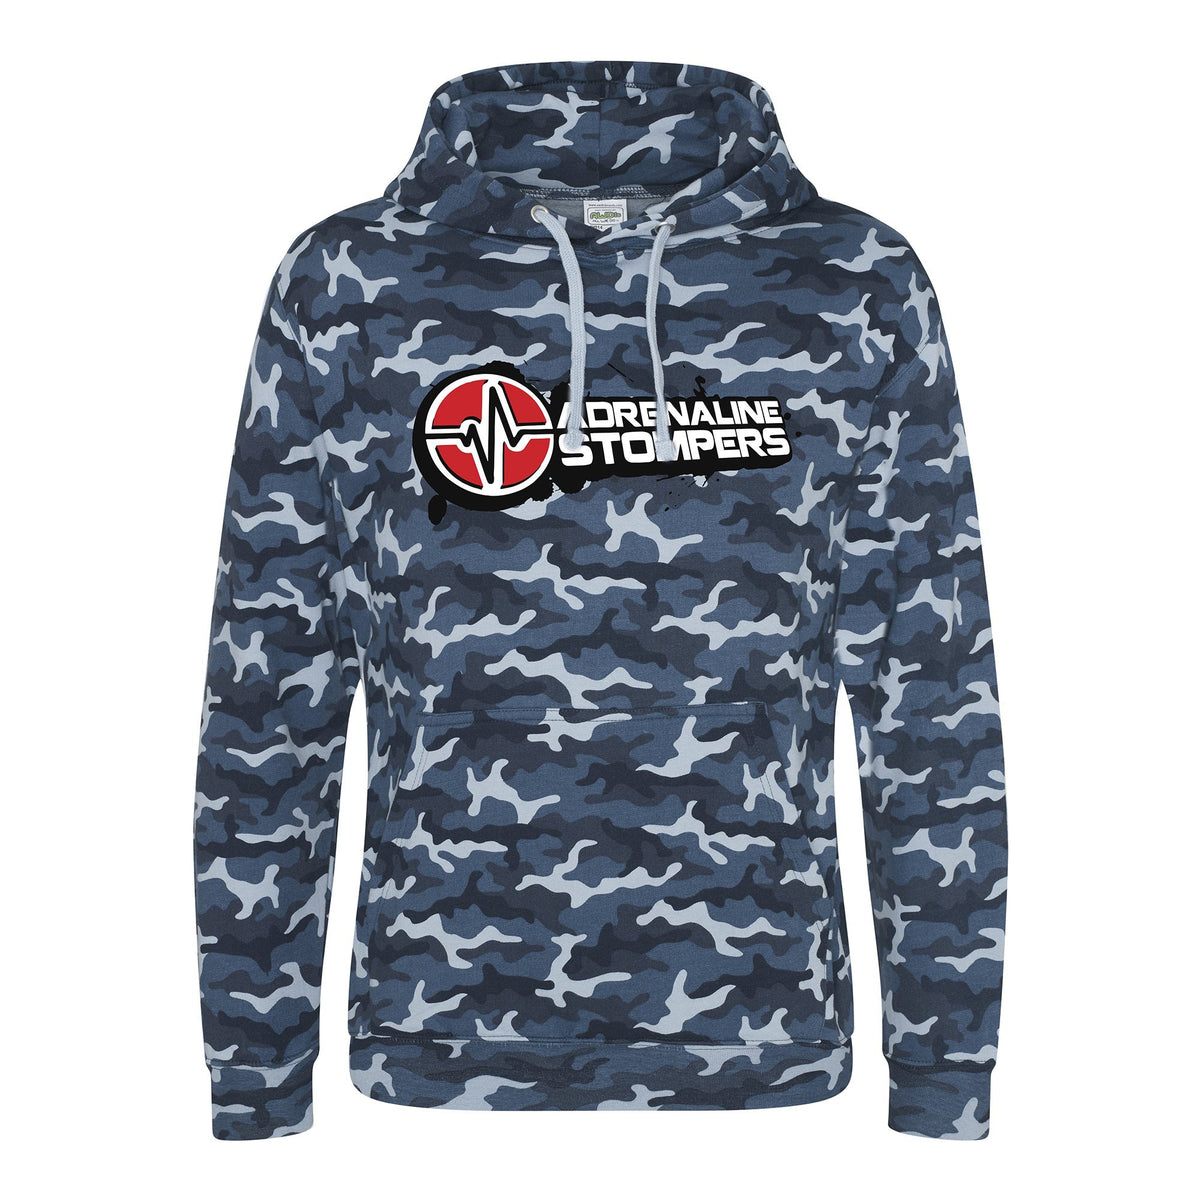 Adrenaline Stompers Blue Camo T-Shirt & Hoodie Adrenaline Stompers Unisex Hoodie Small